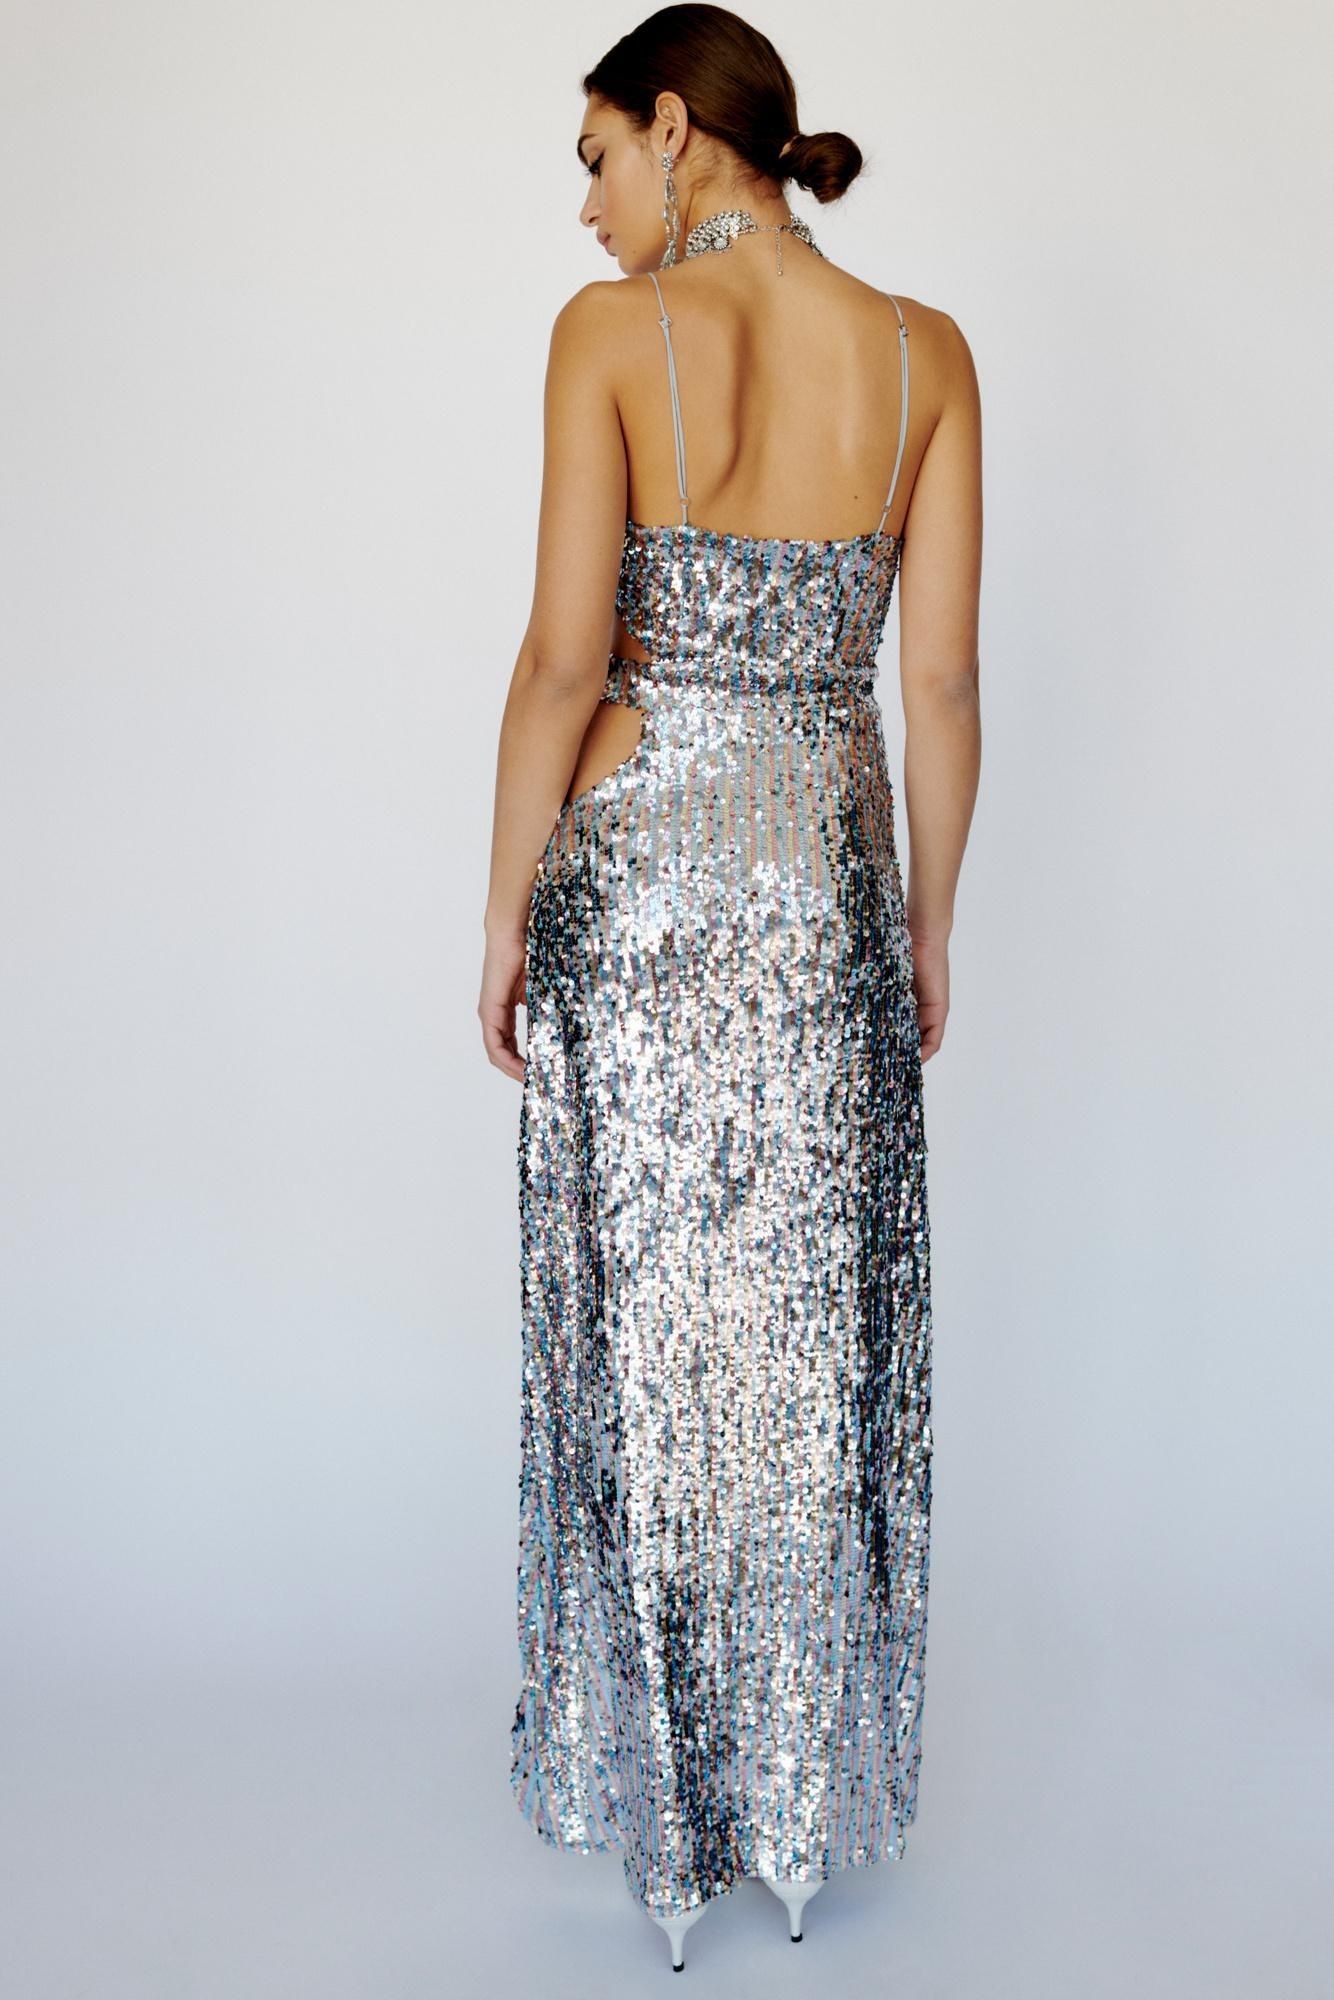 3d0ce01058 Free People Showtime Maxi Dress By For Love & Lemons in Metallic - Lyst